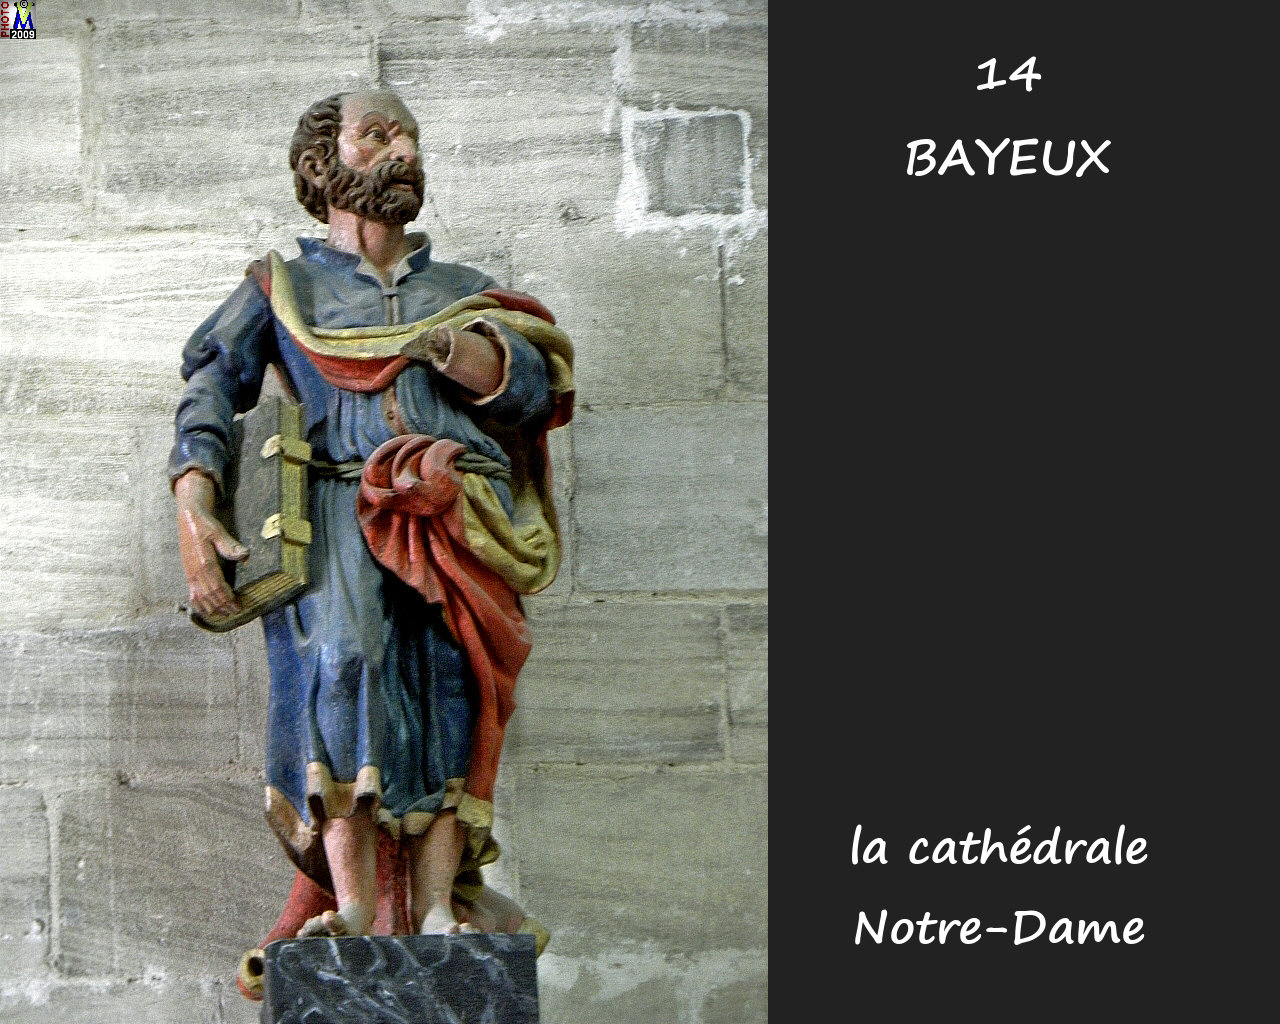 14BAYEUX_cathedrale_262.jpg